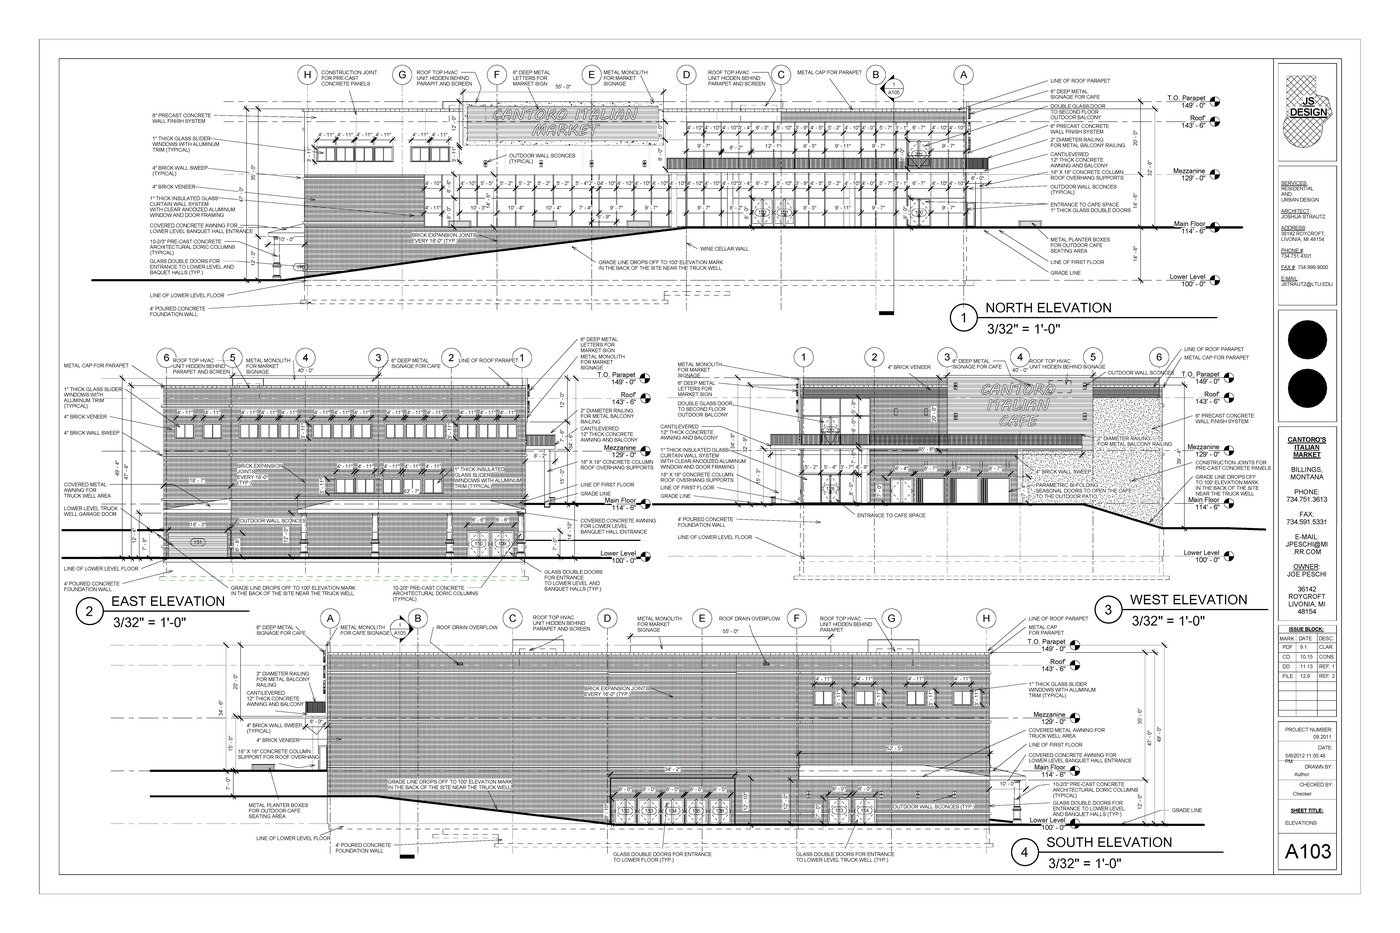 Cantoro Market Construction Drawings by Josh Strautz at